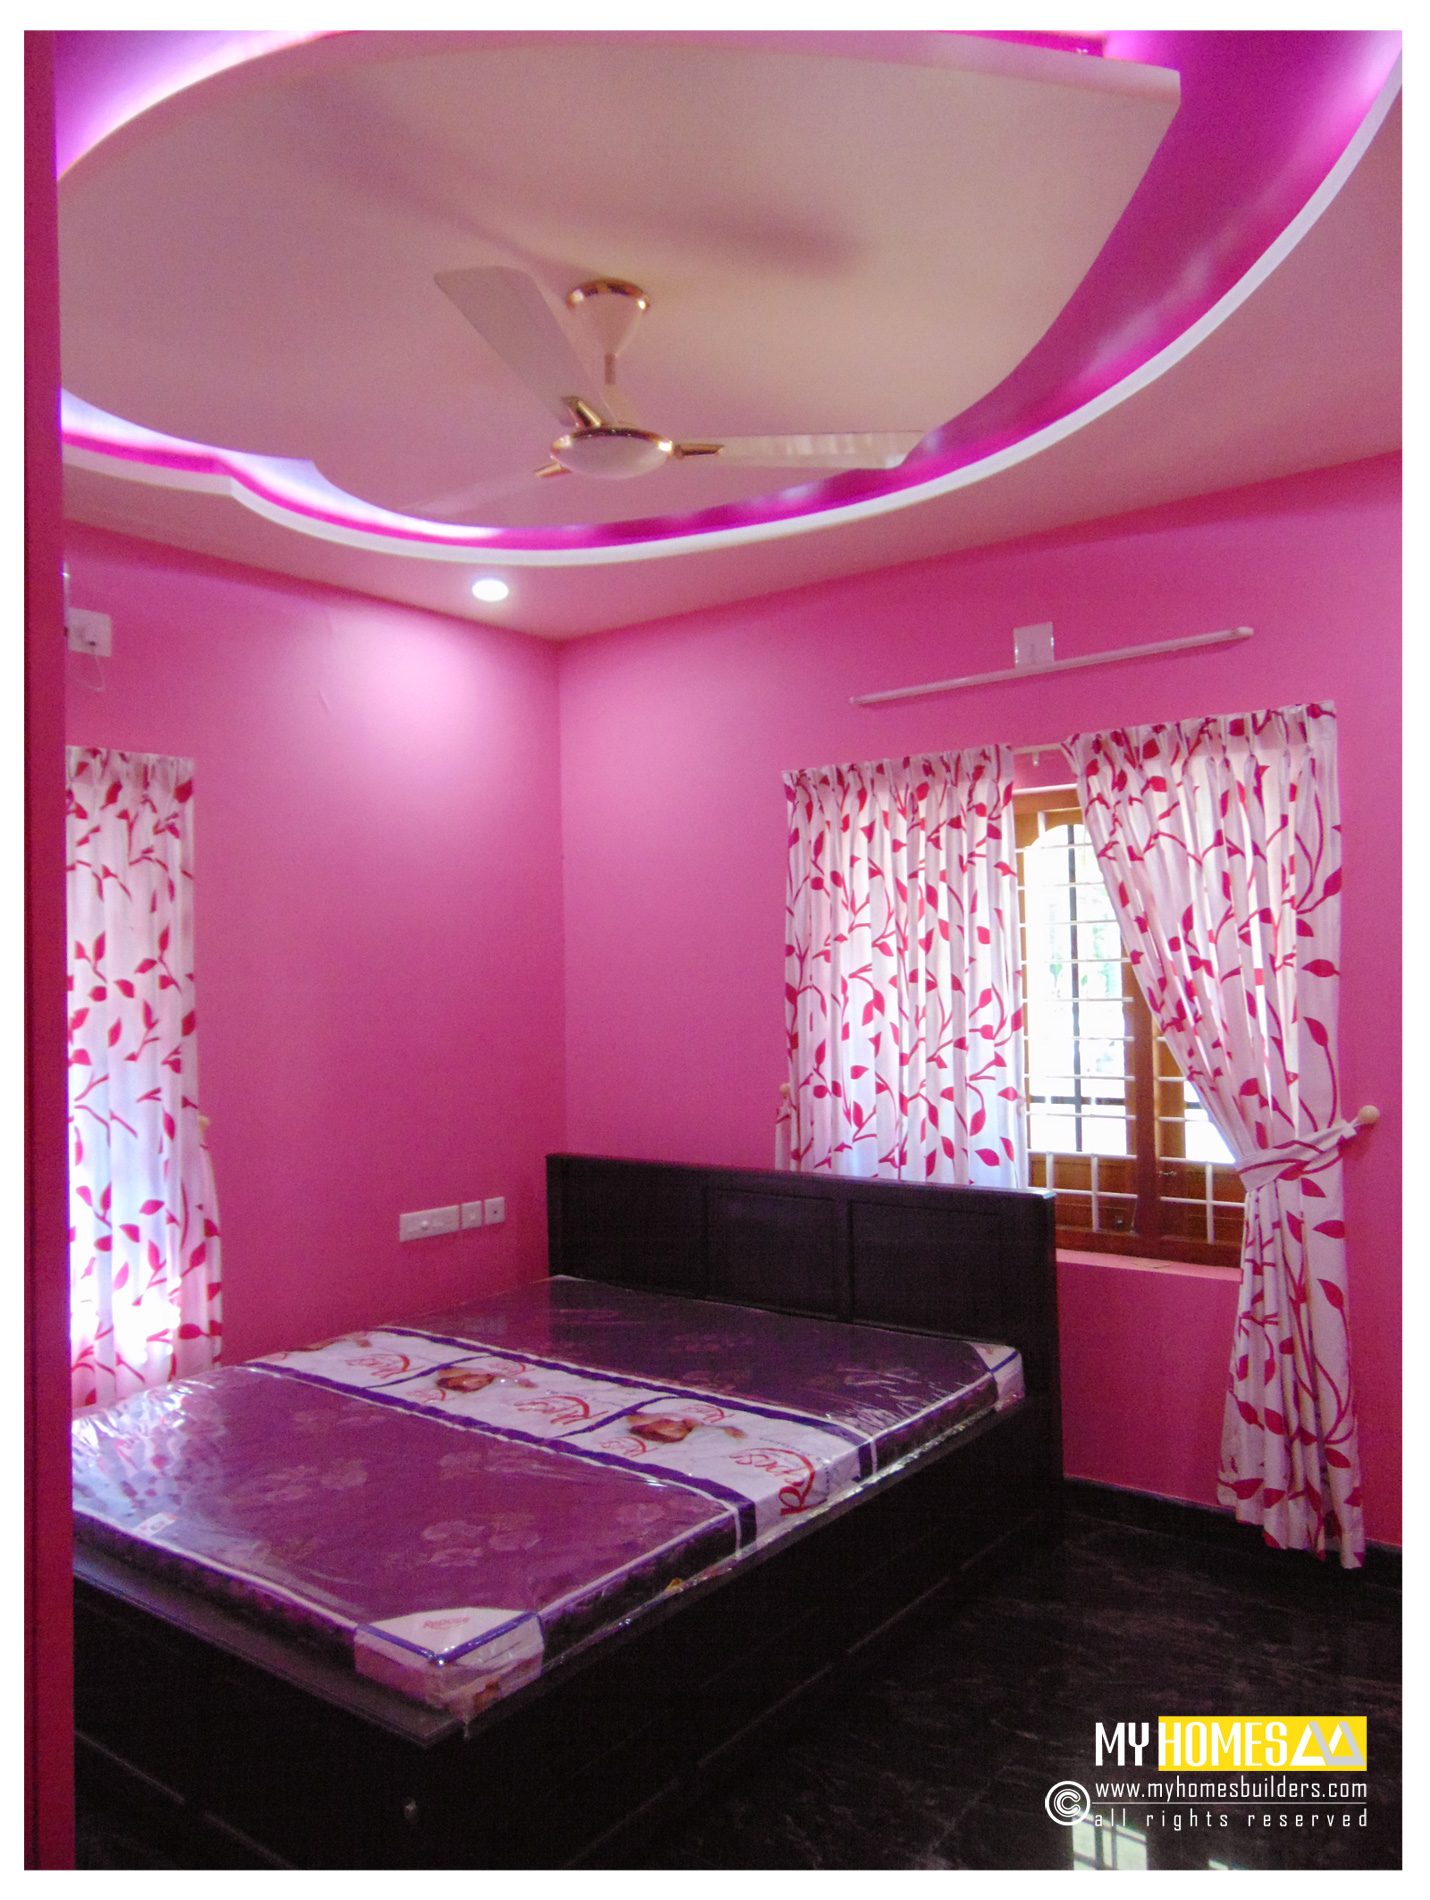 Simple style kerala bedroom designs ideas for home interior for Bedroom decor styles